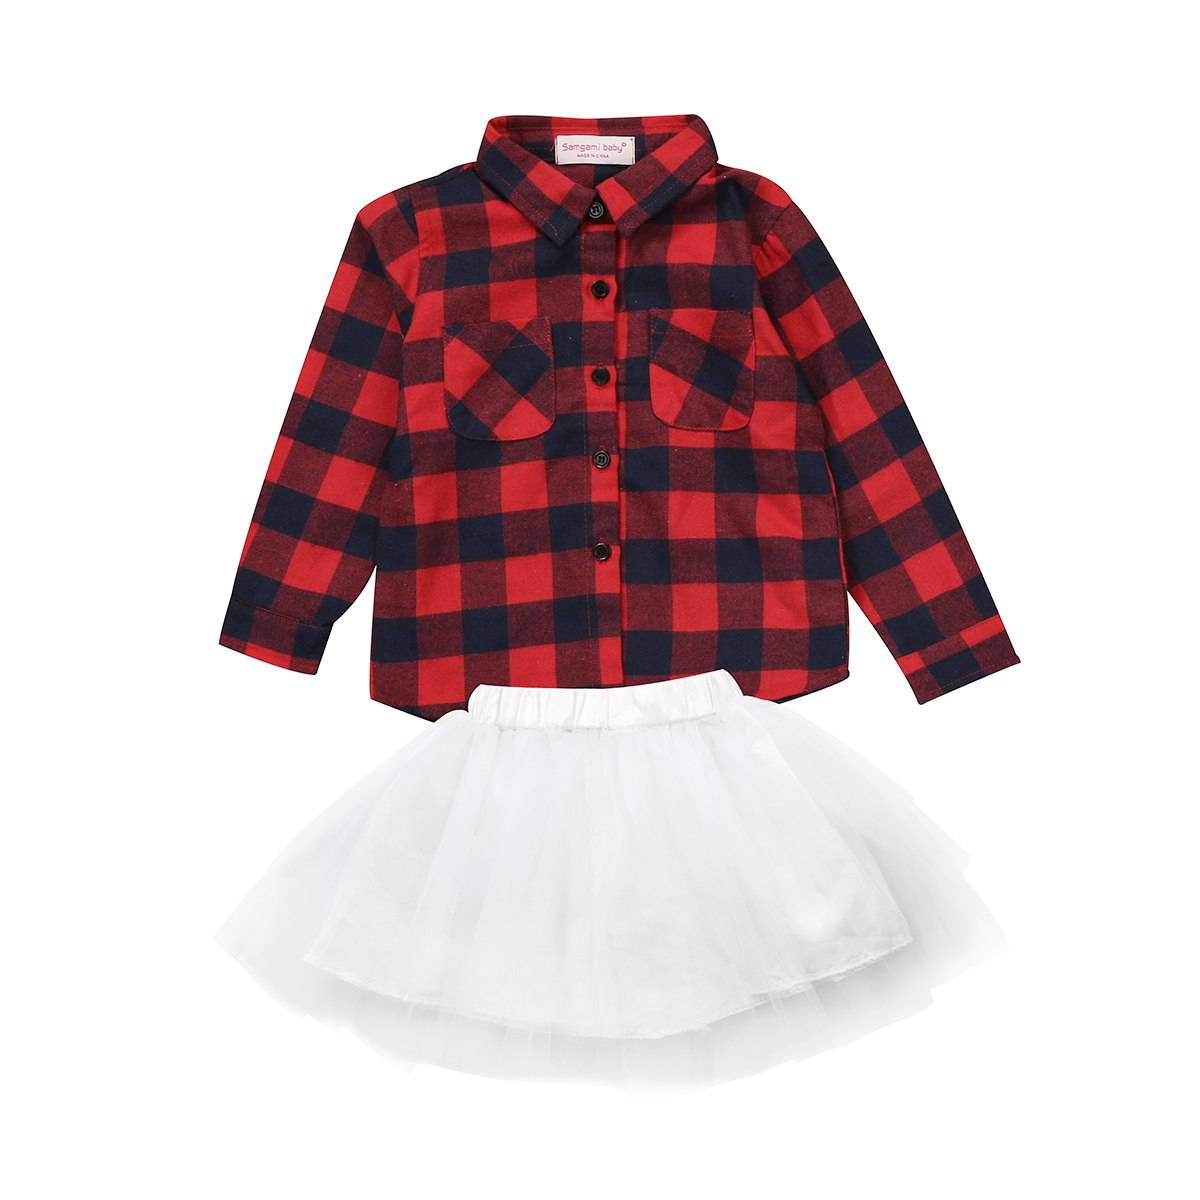 Skirts Dress Outfit 2PCS US Toddler Kids Baby Girl Clothes Lace T-shirt Tops